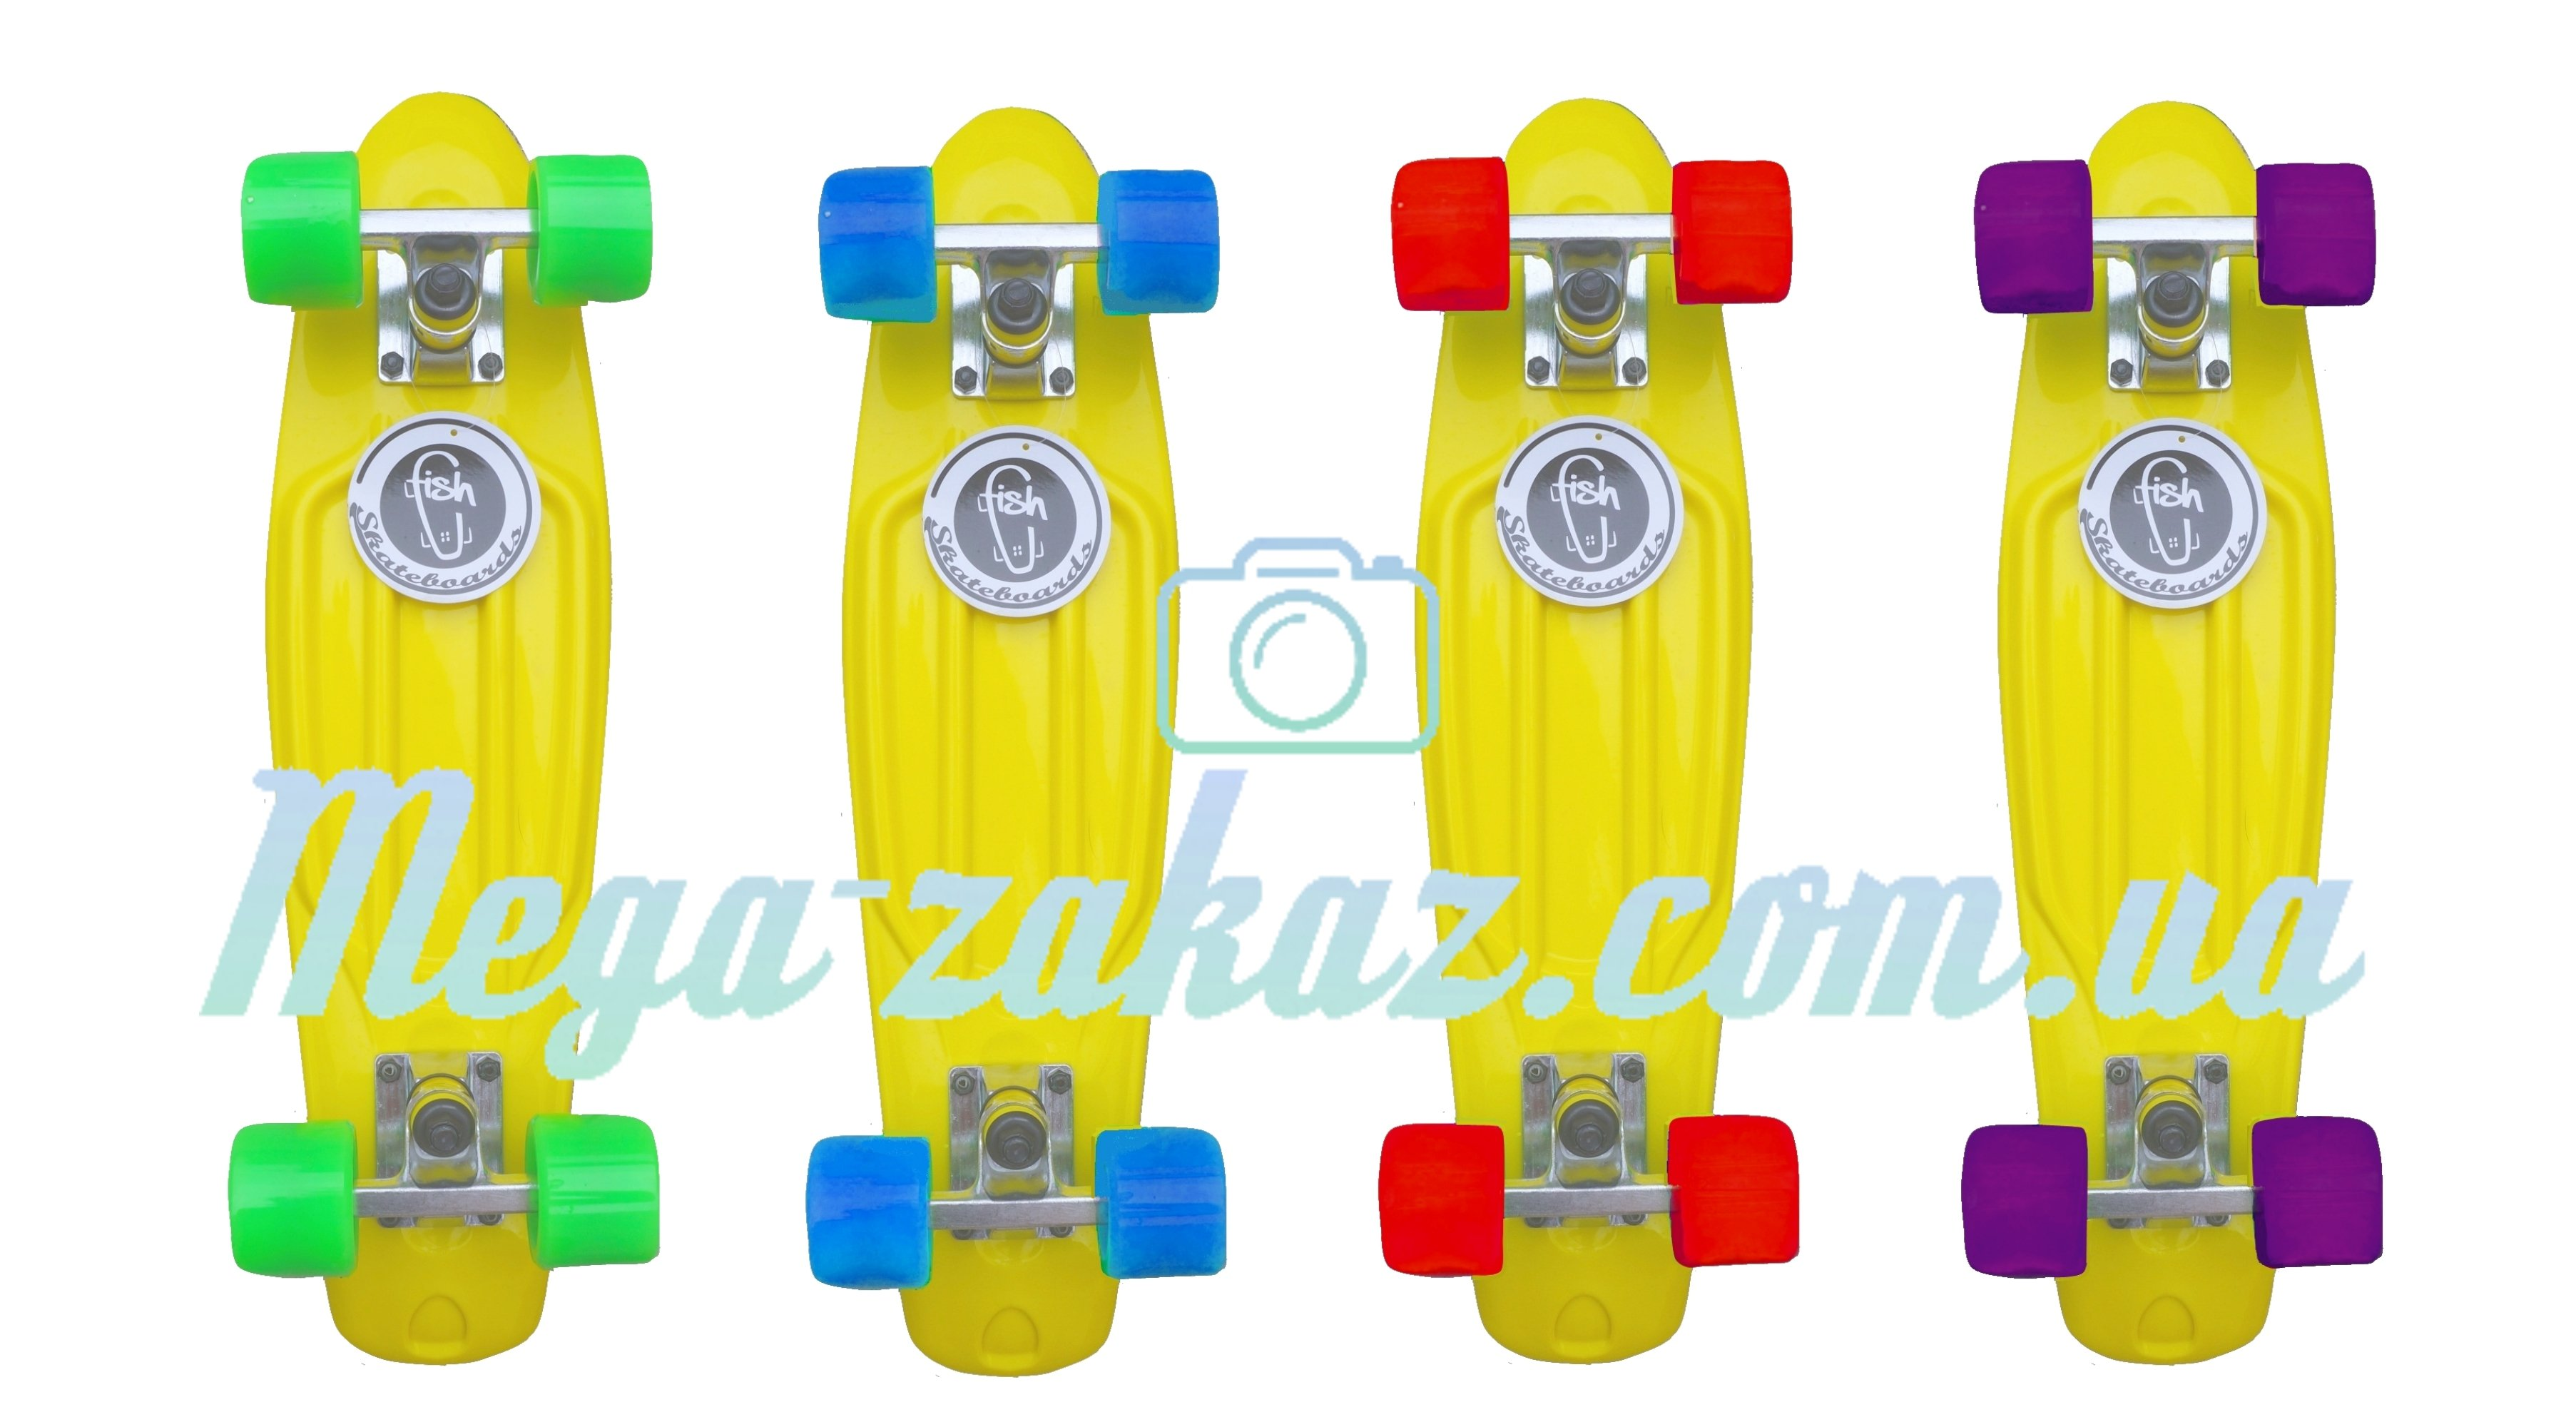 https://mega-zakaz.com.ua/images/upload/penny%20board%20yellow%20collectionZAKAZ.jpg